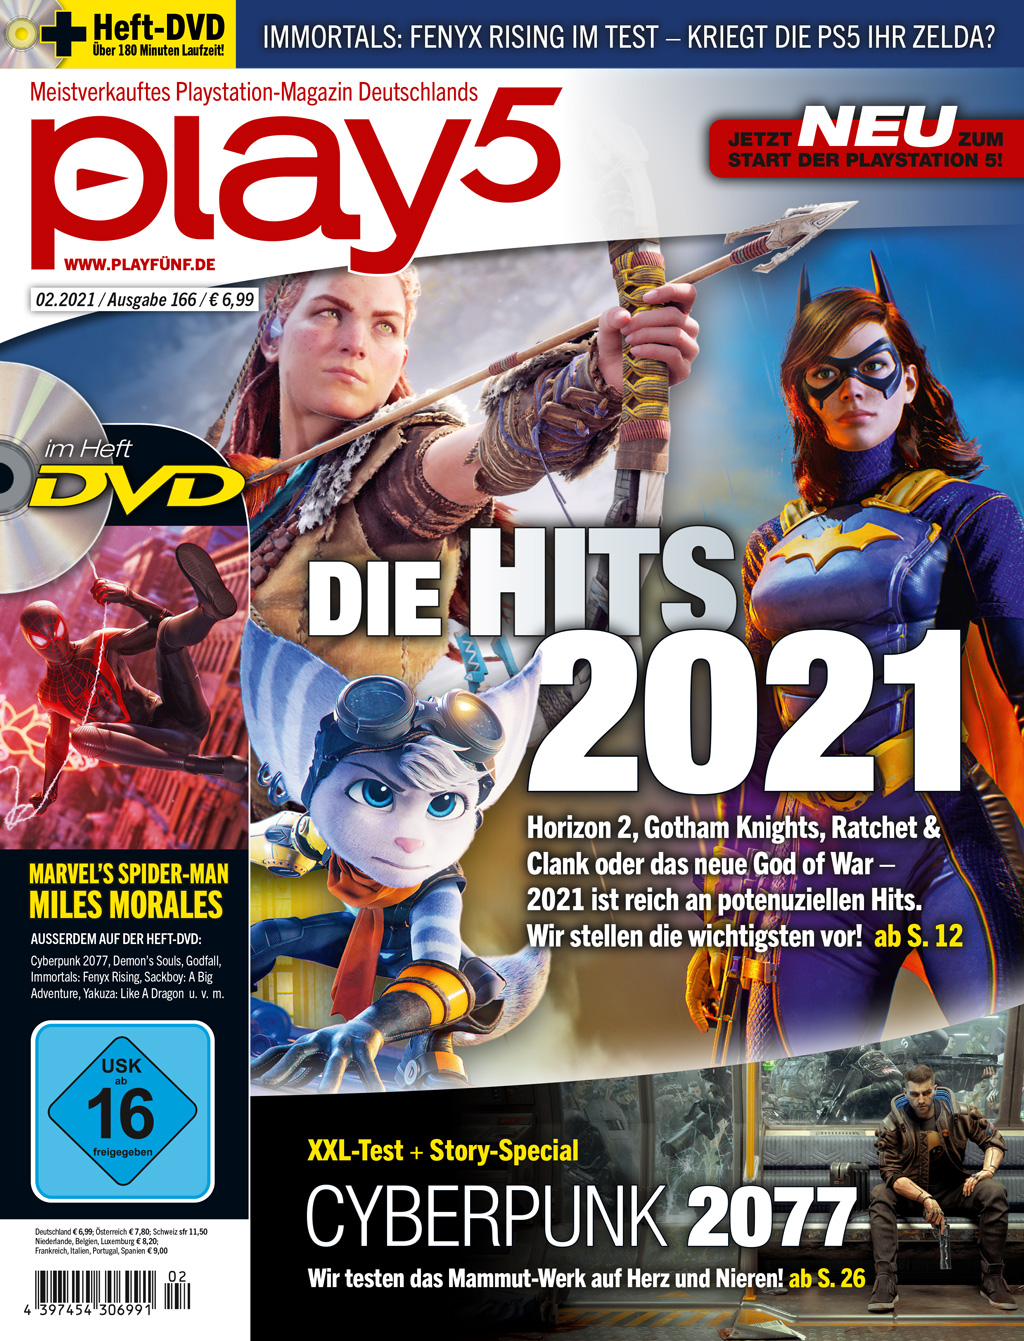 play5 02/21 with a big hit preview for the year 2021